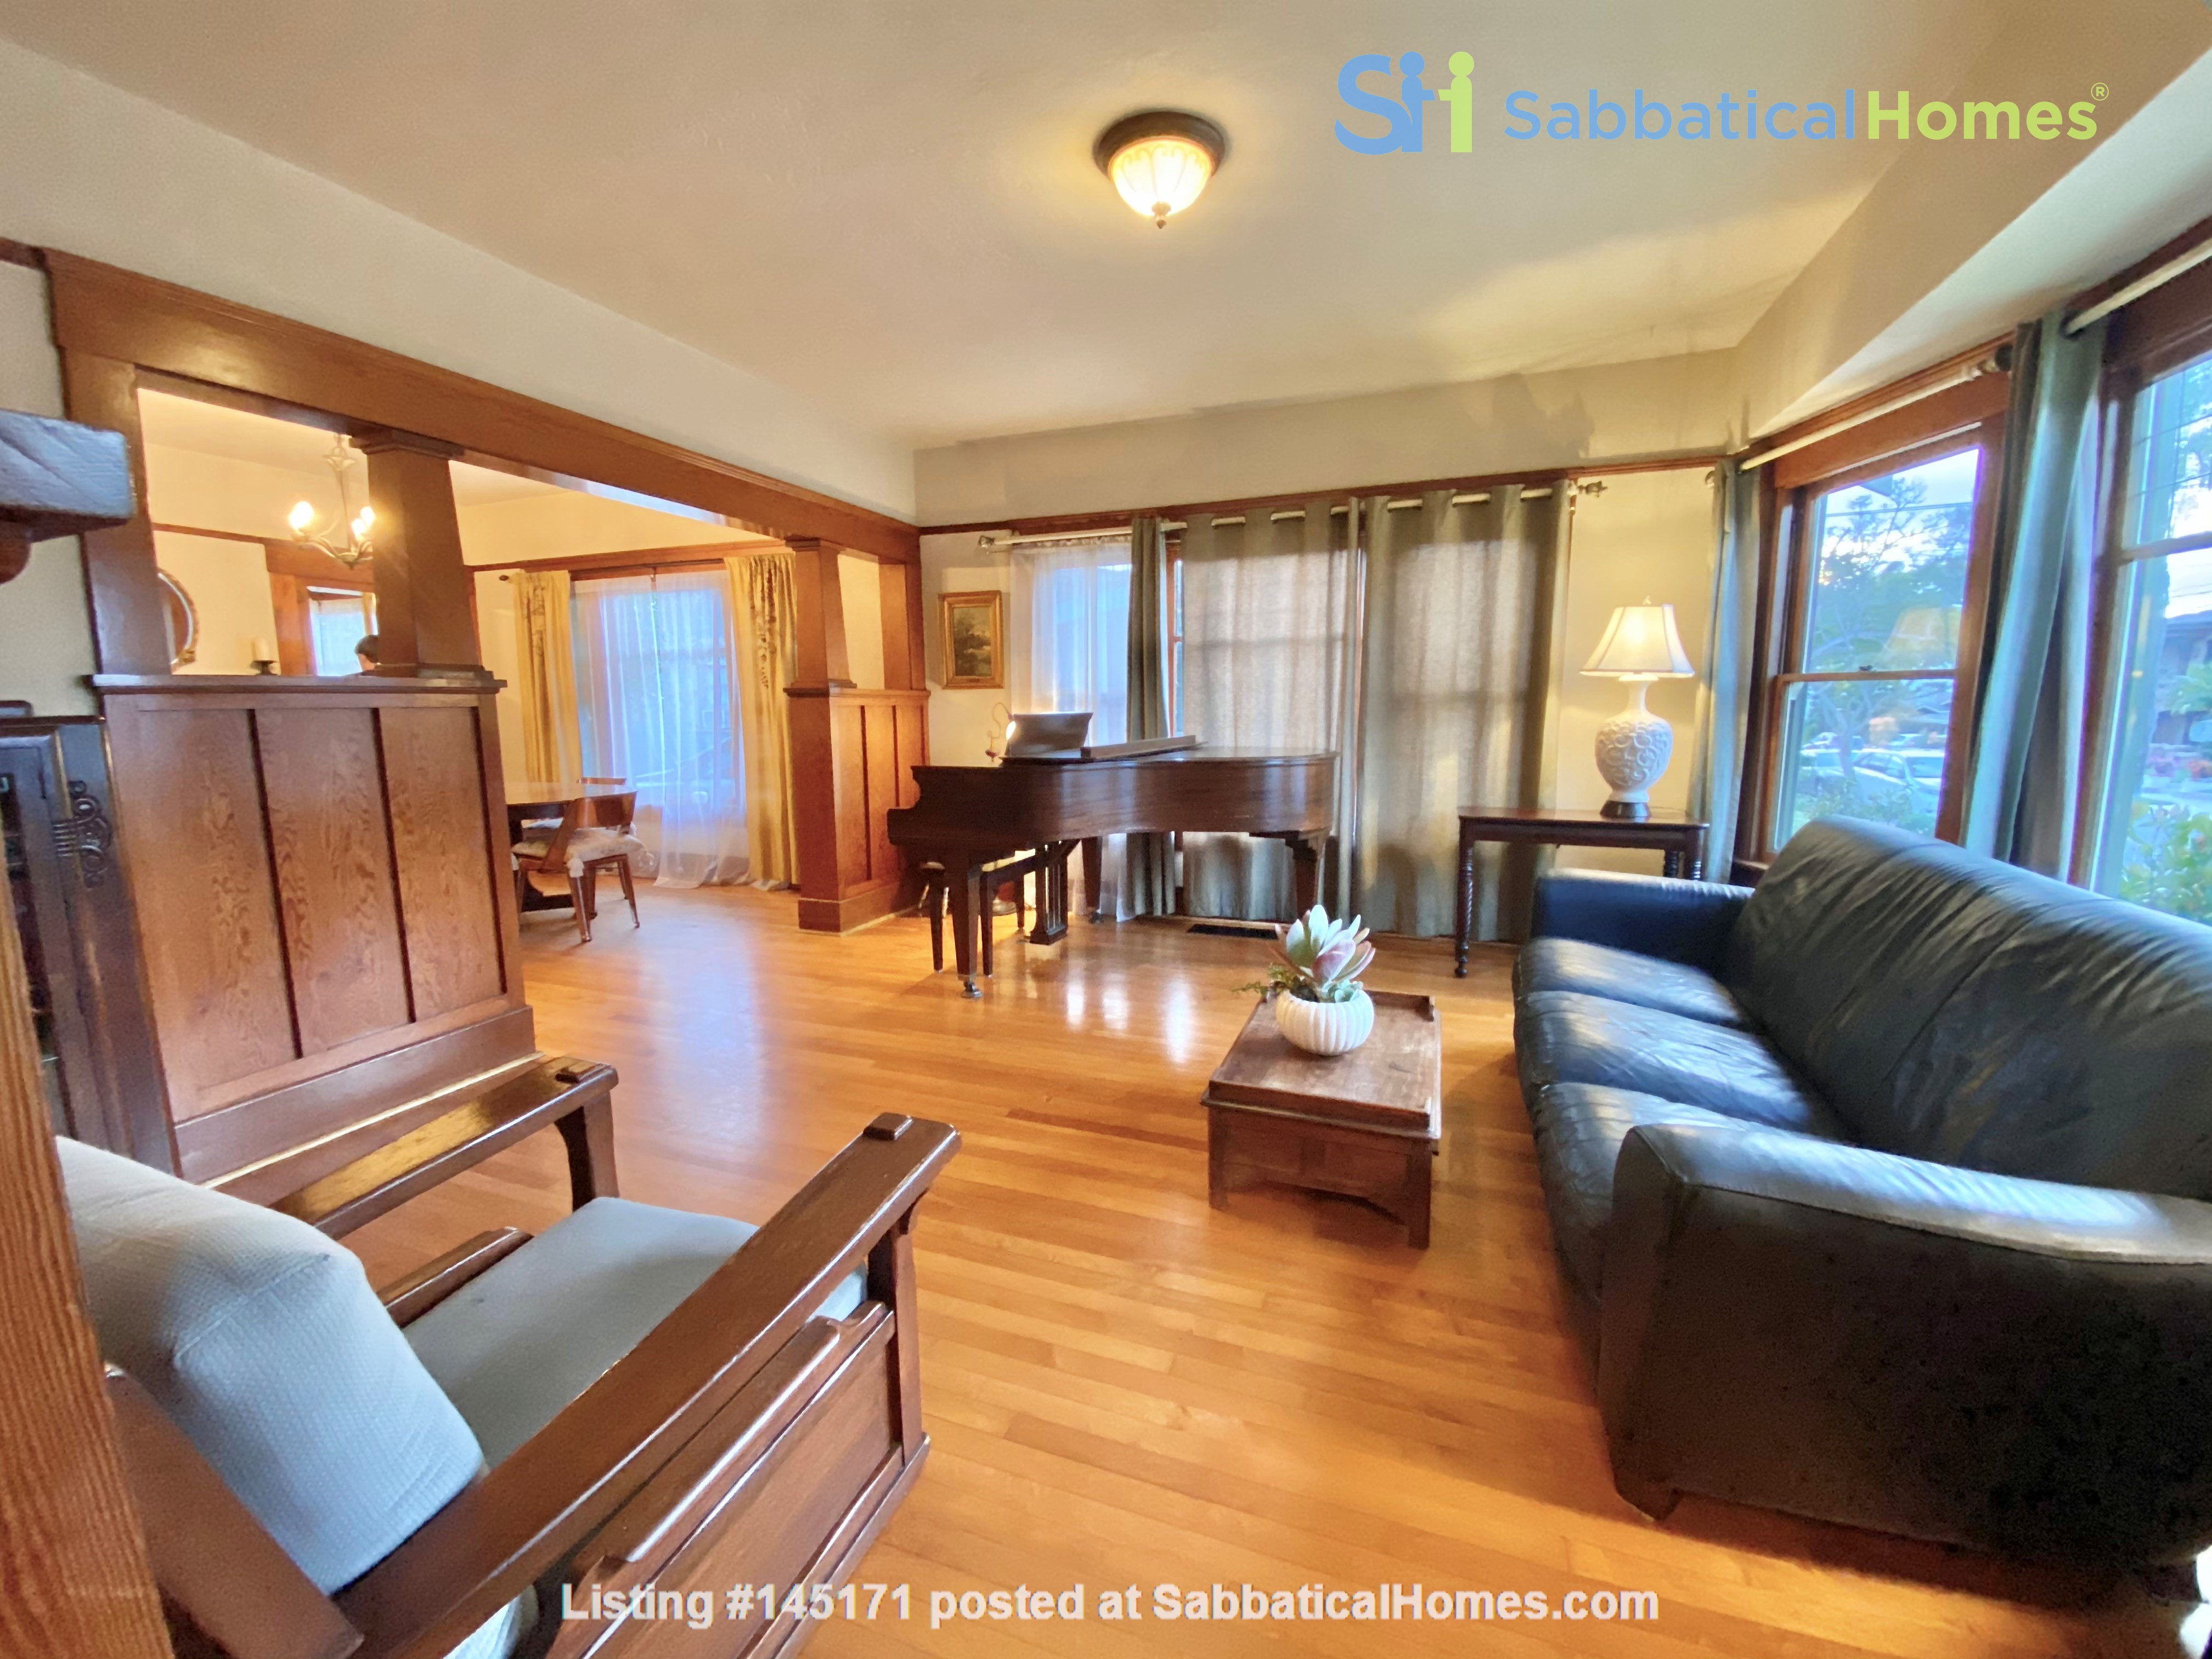 Lovely Craftsman home in historic neighborhood near beaches and downtown! Home Rental in San Diego, California, United States 1